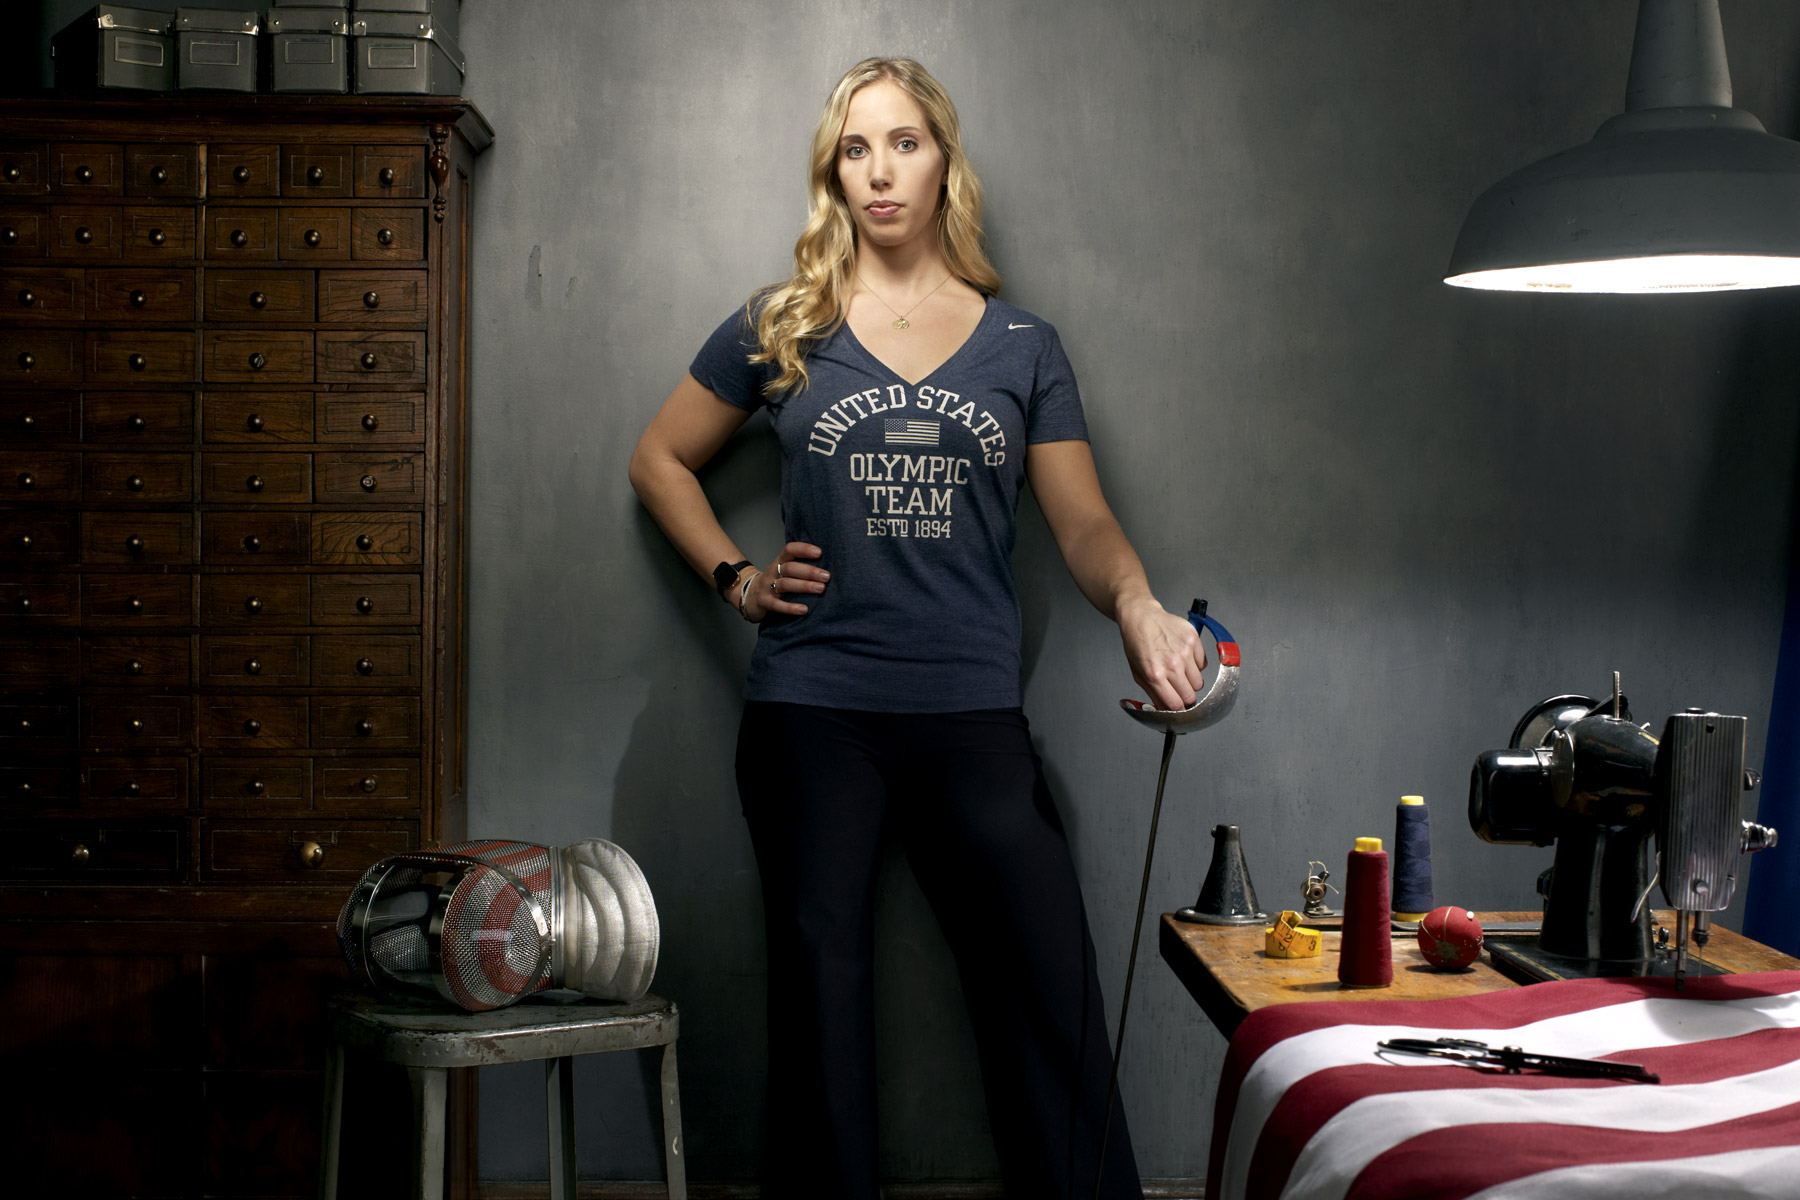 Mariel Zagunis, US Olympic athlete, photographed by Scott Council